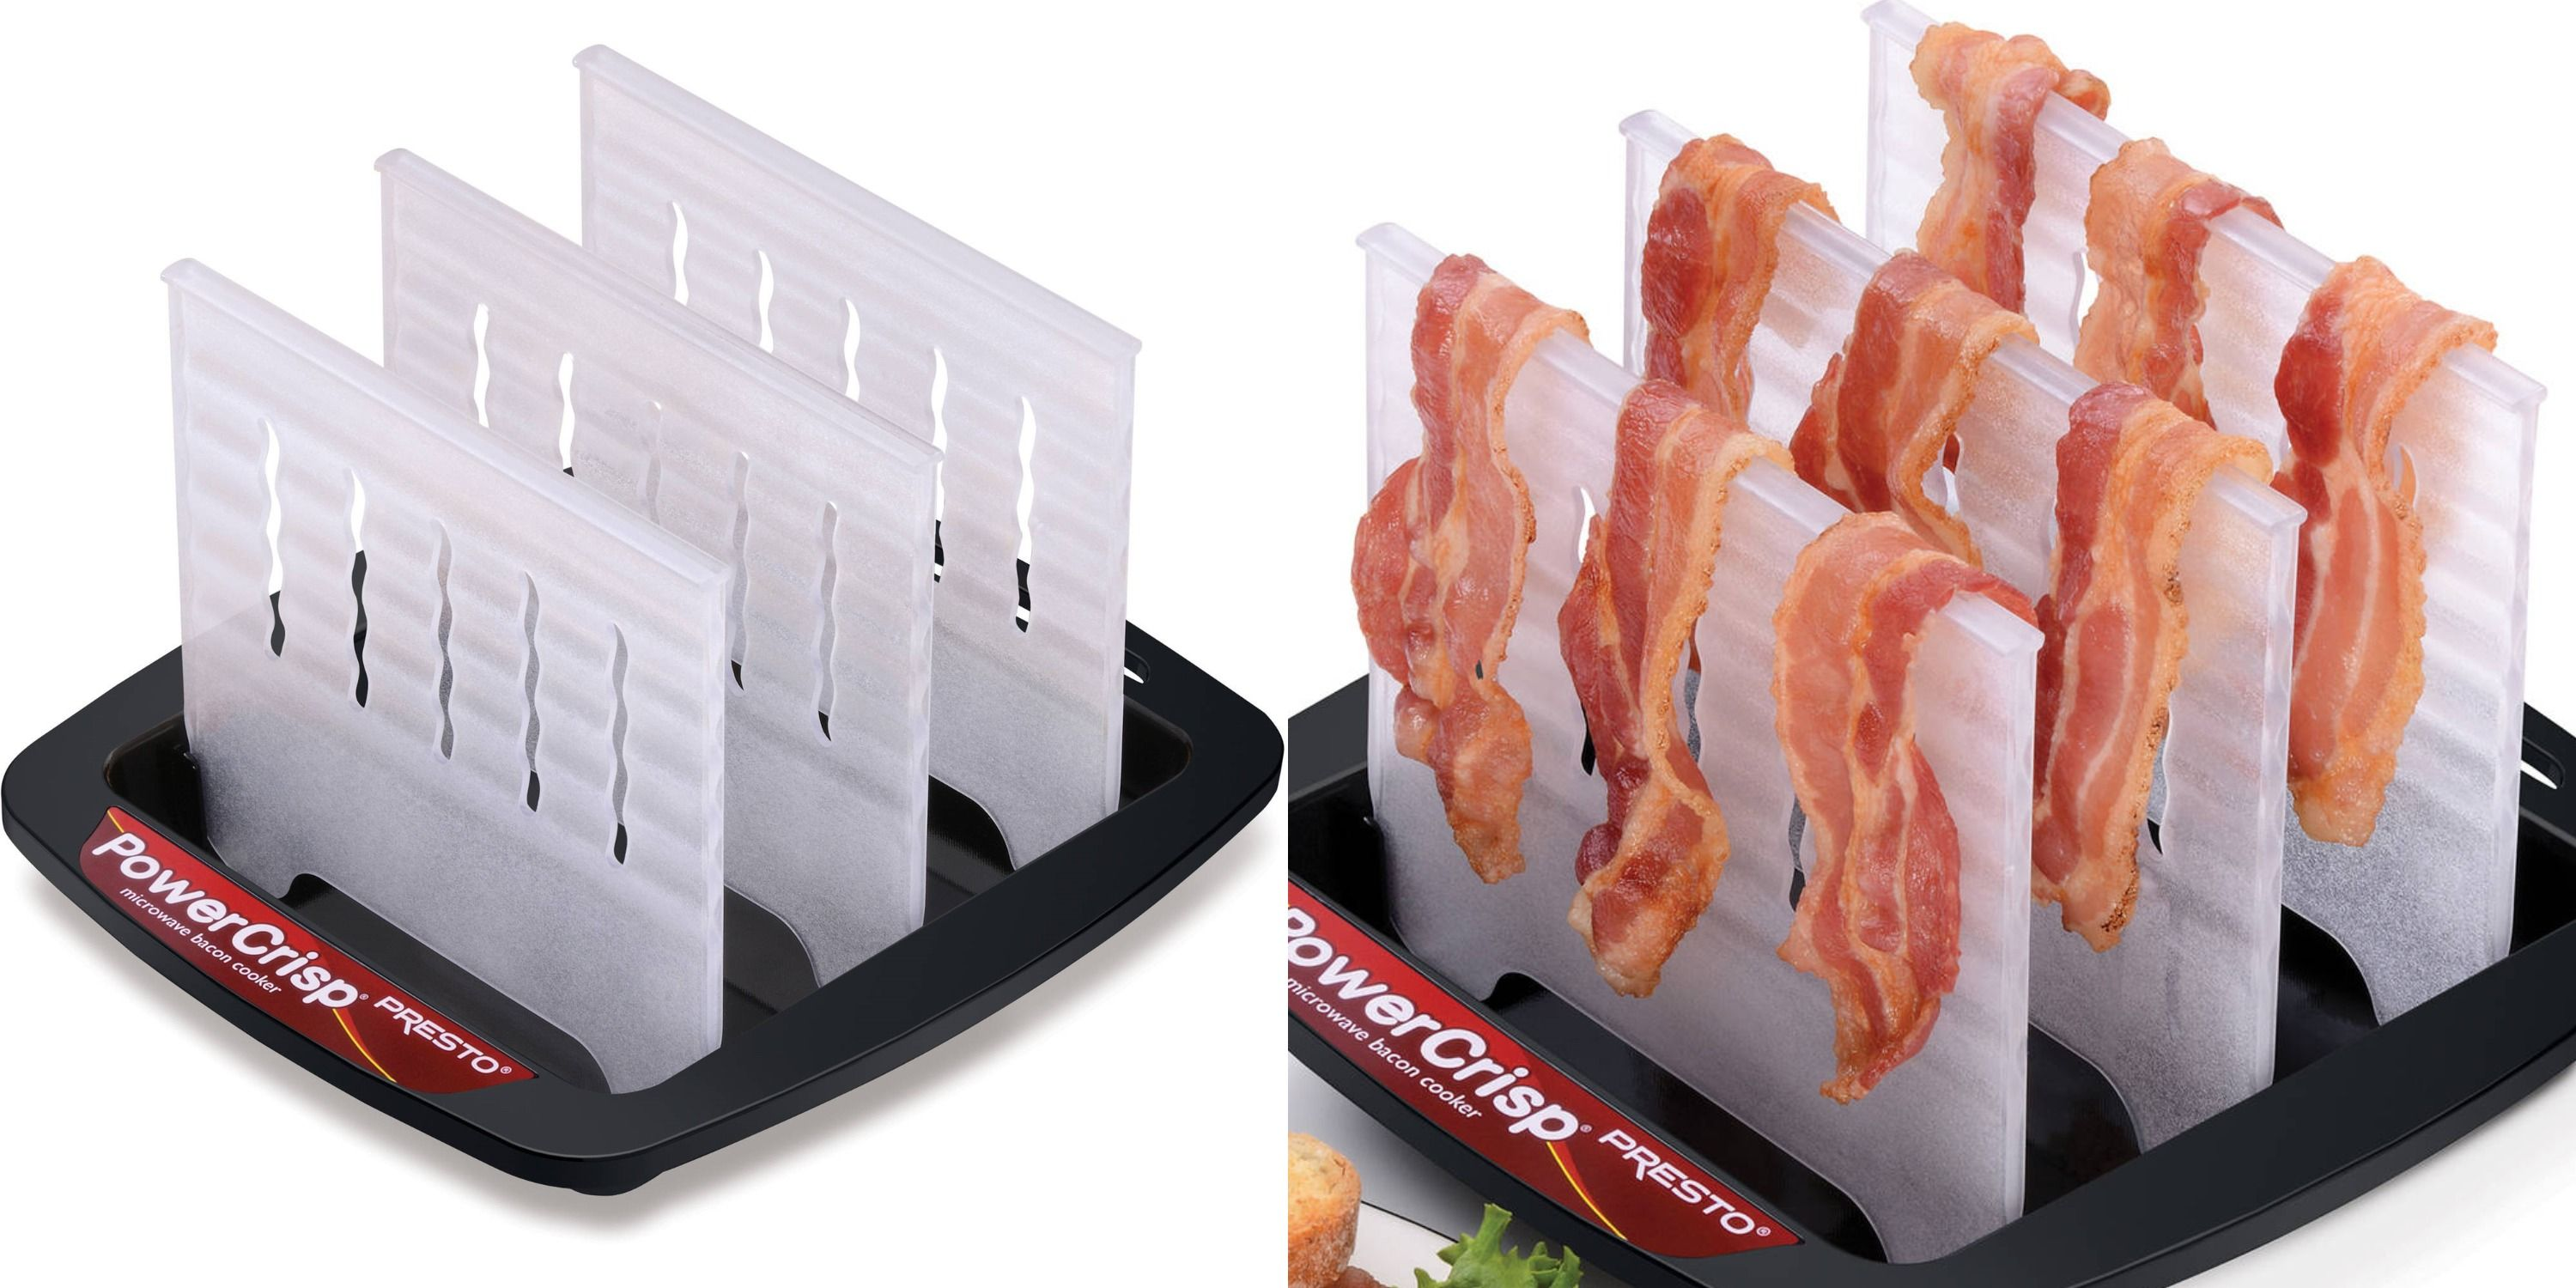 Walmart Is Selling A Tool That Helps You Make Crispy Bacon In The Microwave Without A Mess